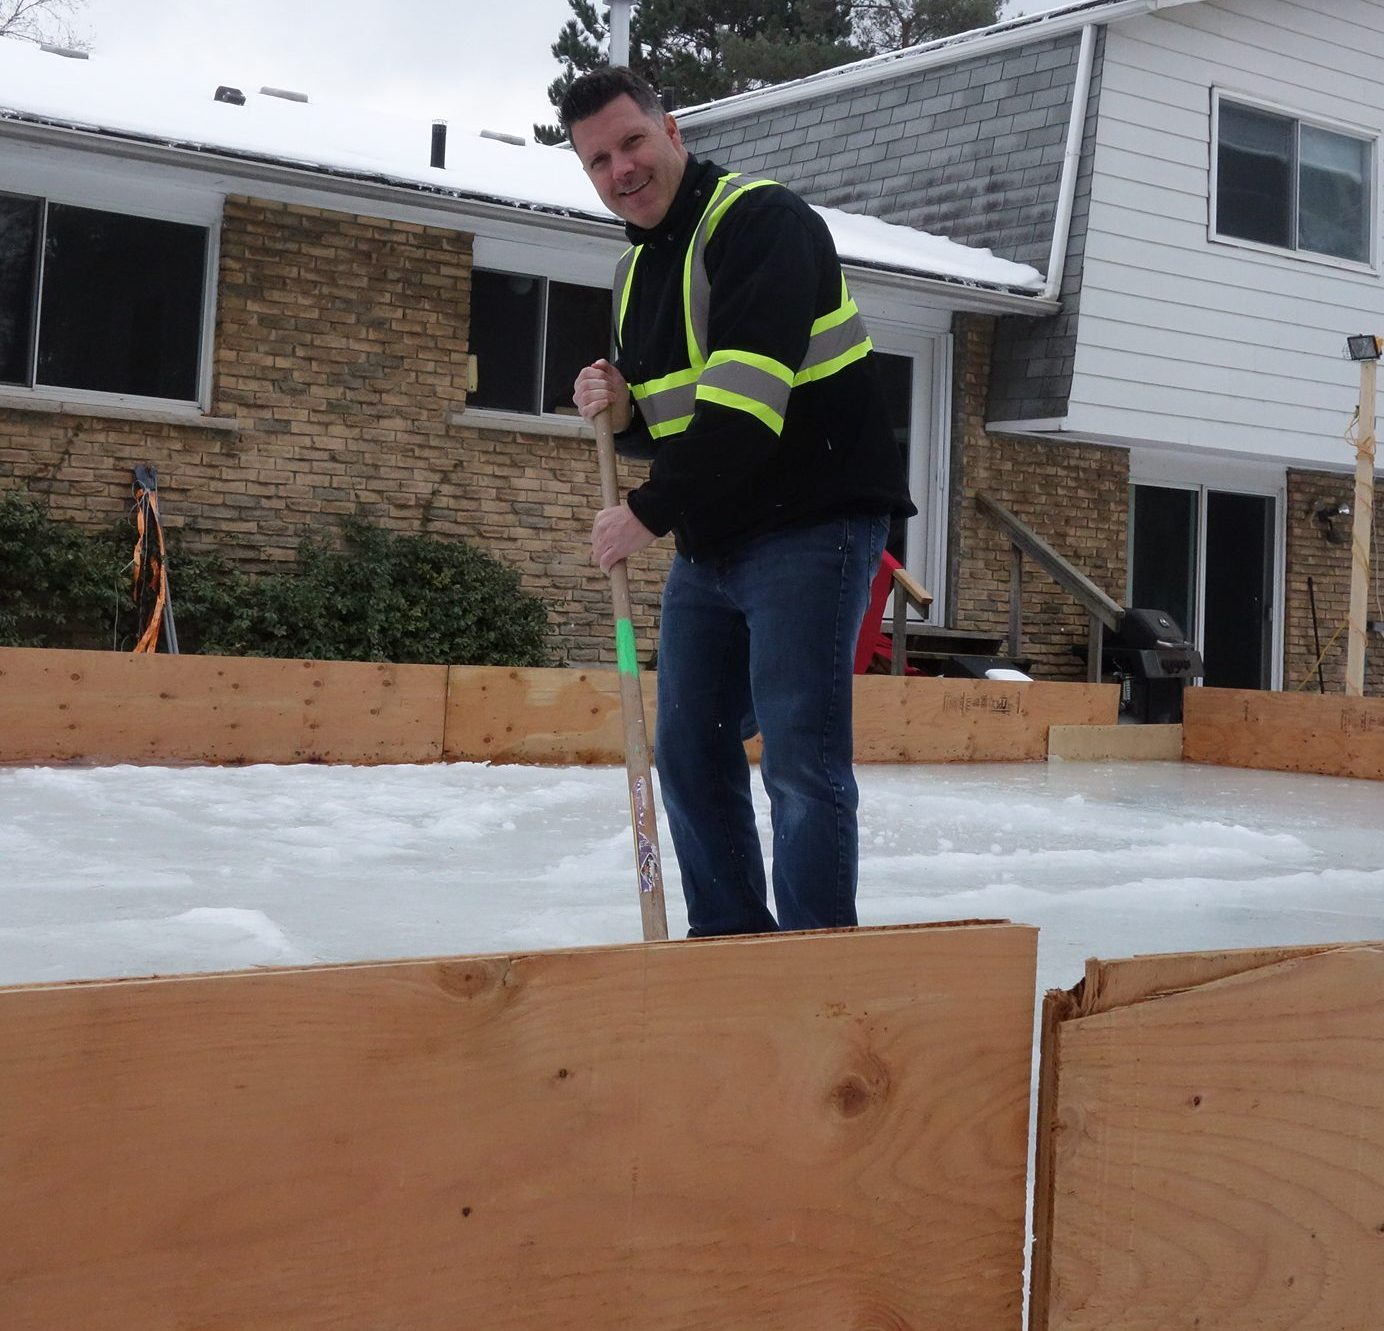 Keith has made the boards of the DIY backyard ice rink very safe.